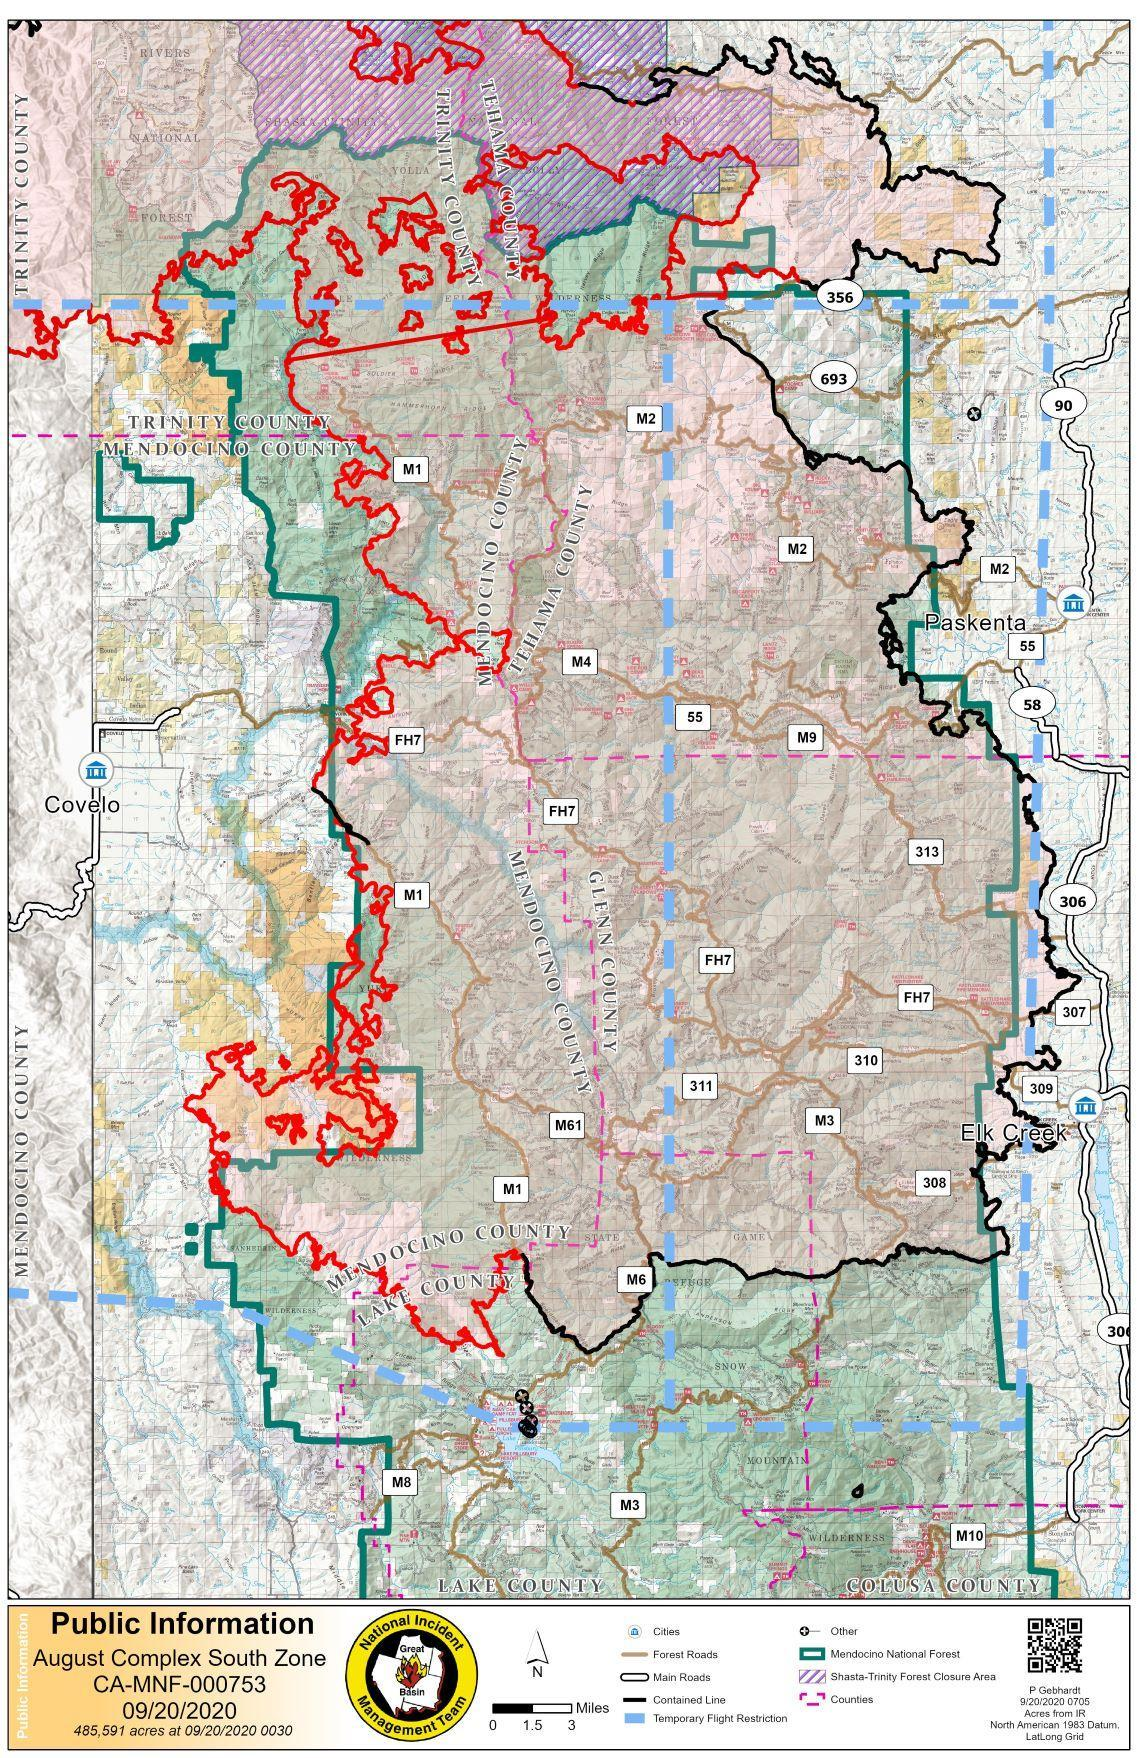 Map showing fire perimeter over Mendocino National Forest visitor map